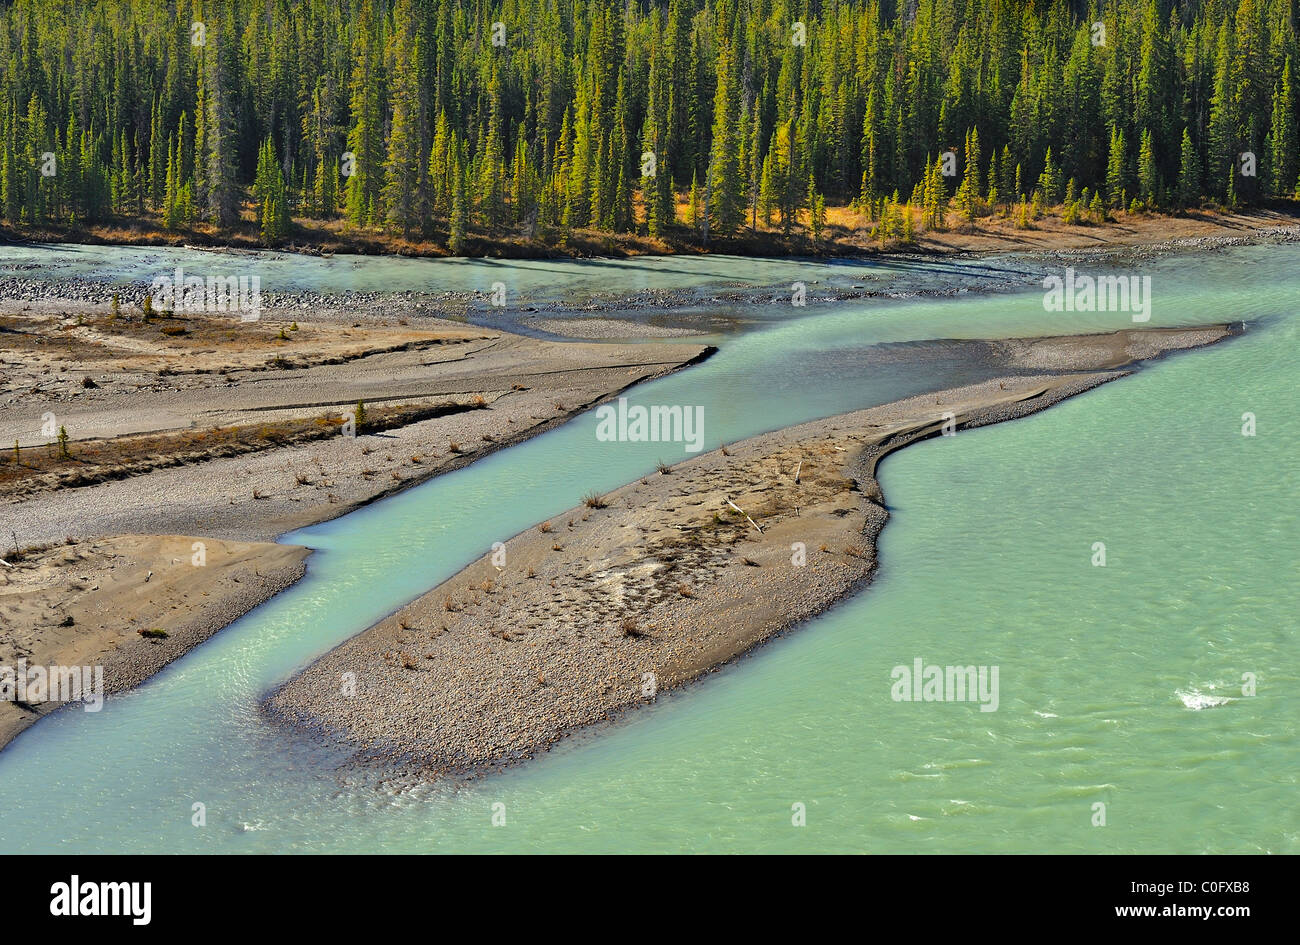 An island of sand formed by the glacier fed Athabasca river in Jasper National Park Alberta Canada. - Stock Image